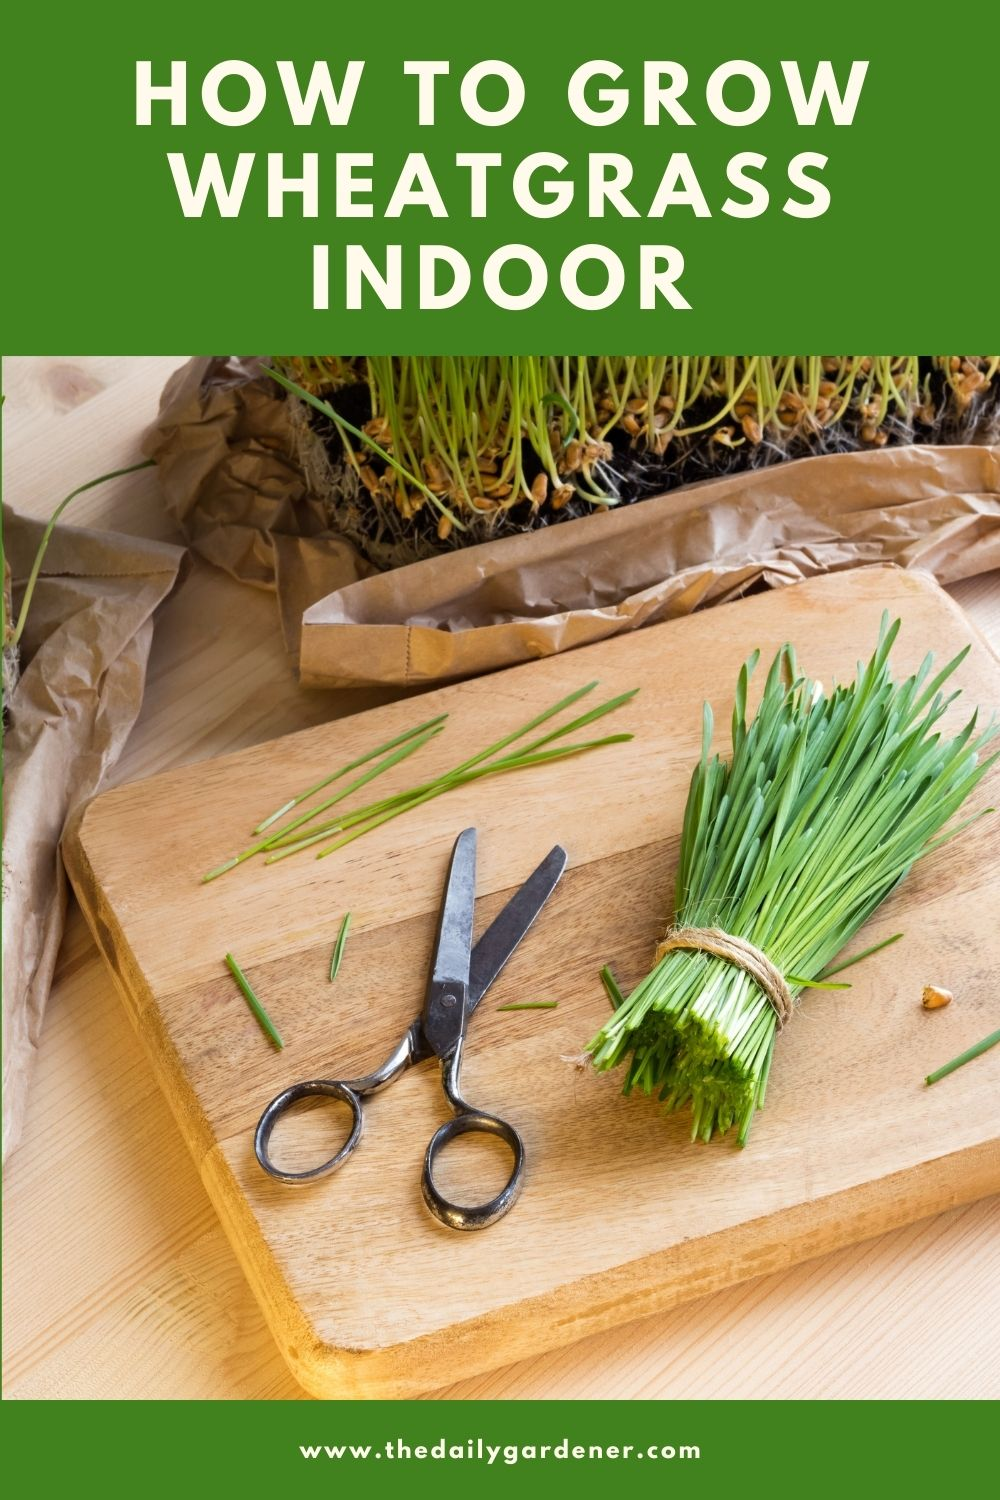 How to Grow Wheatgrass Indoor 2